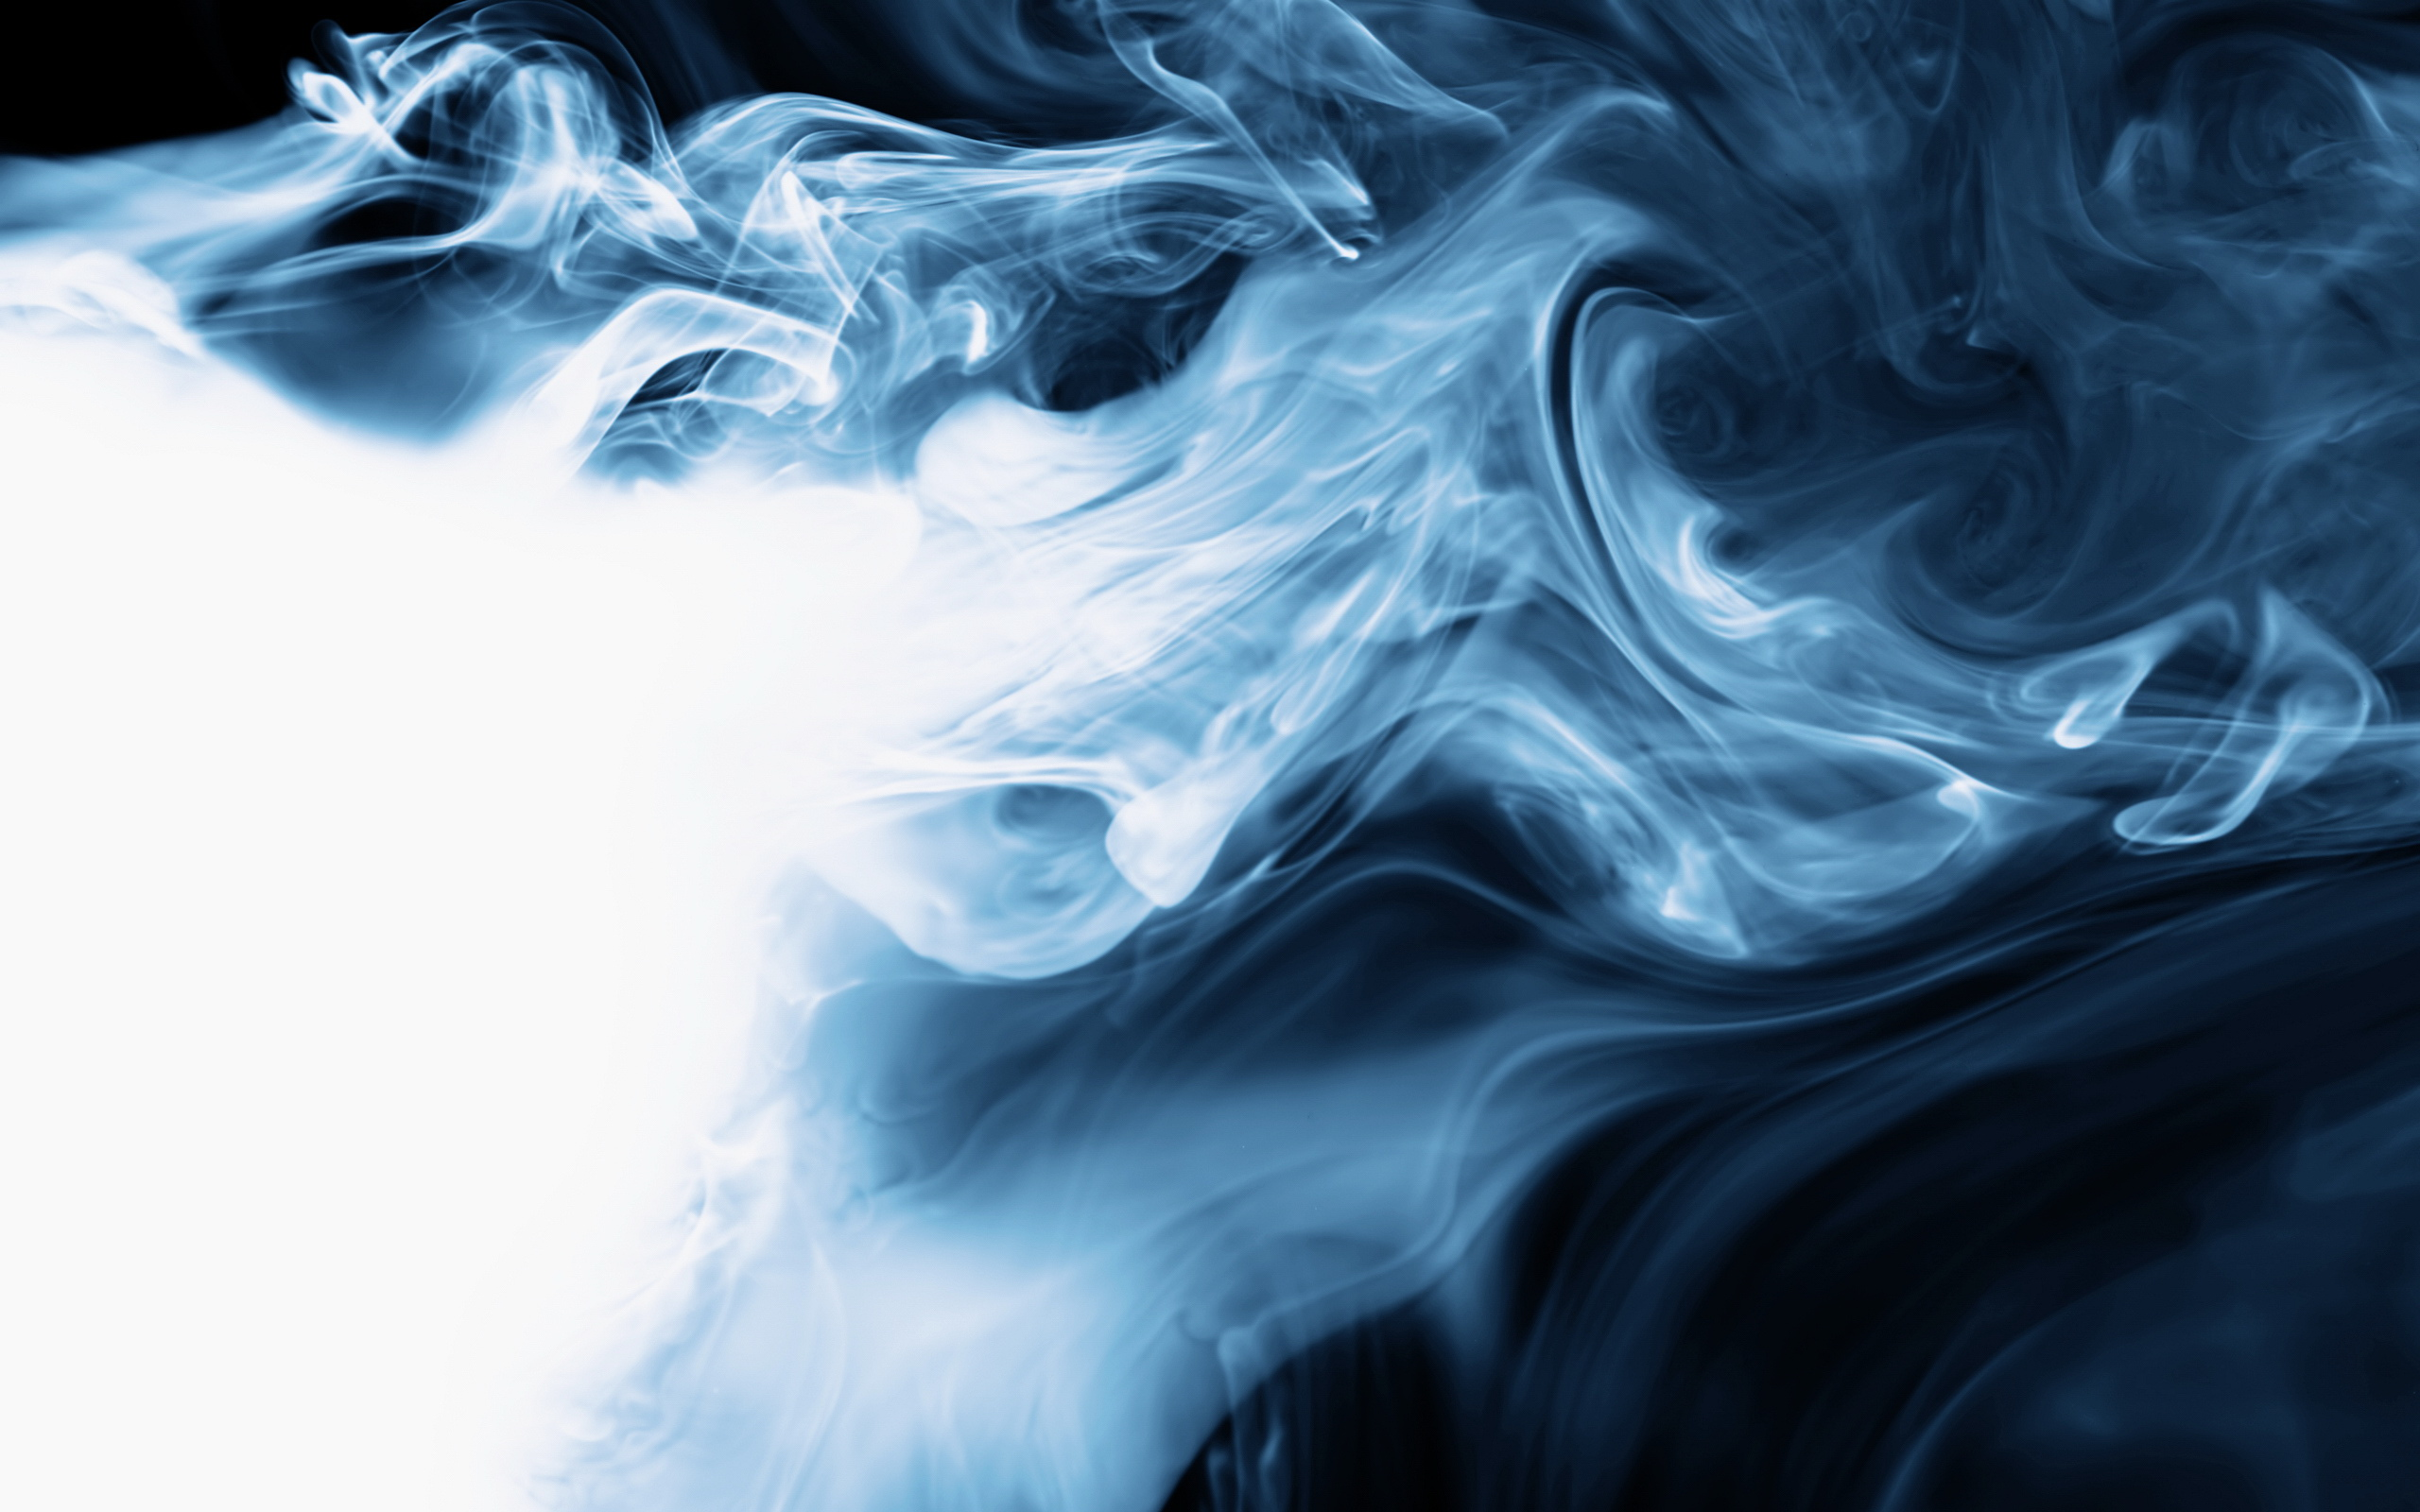 Tobacco smoke wallpapers and images   wallpapers pictures photos 2560x1600